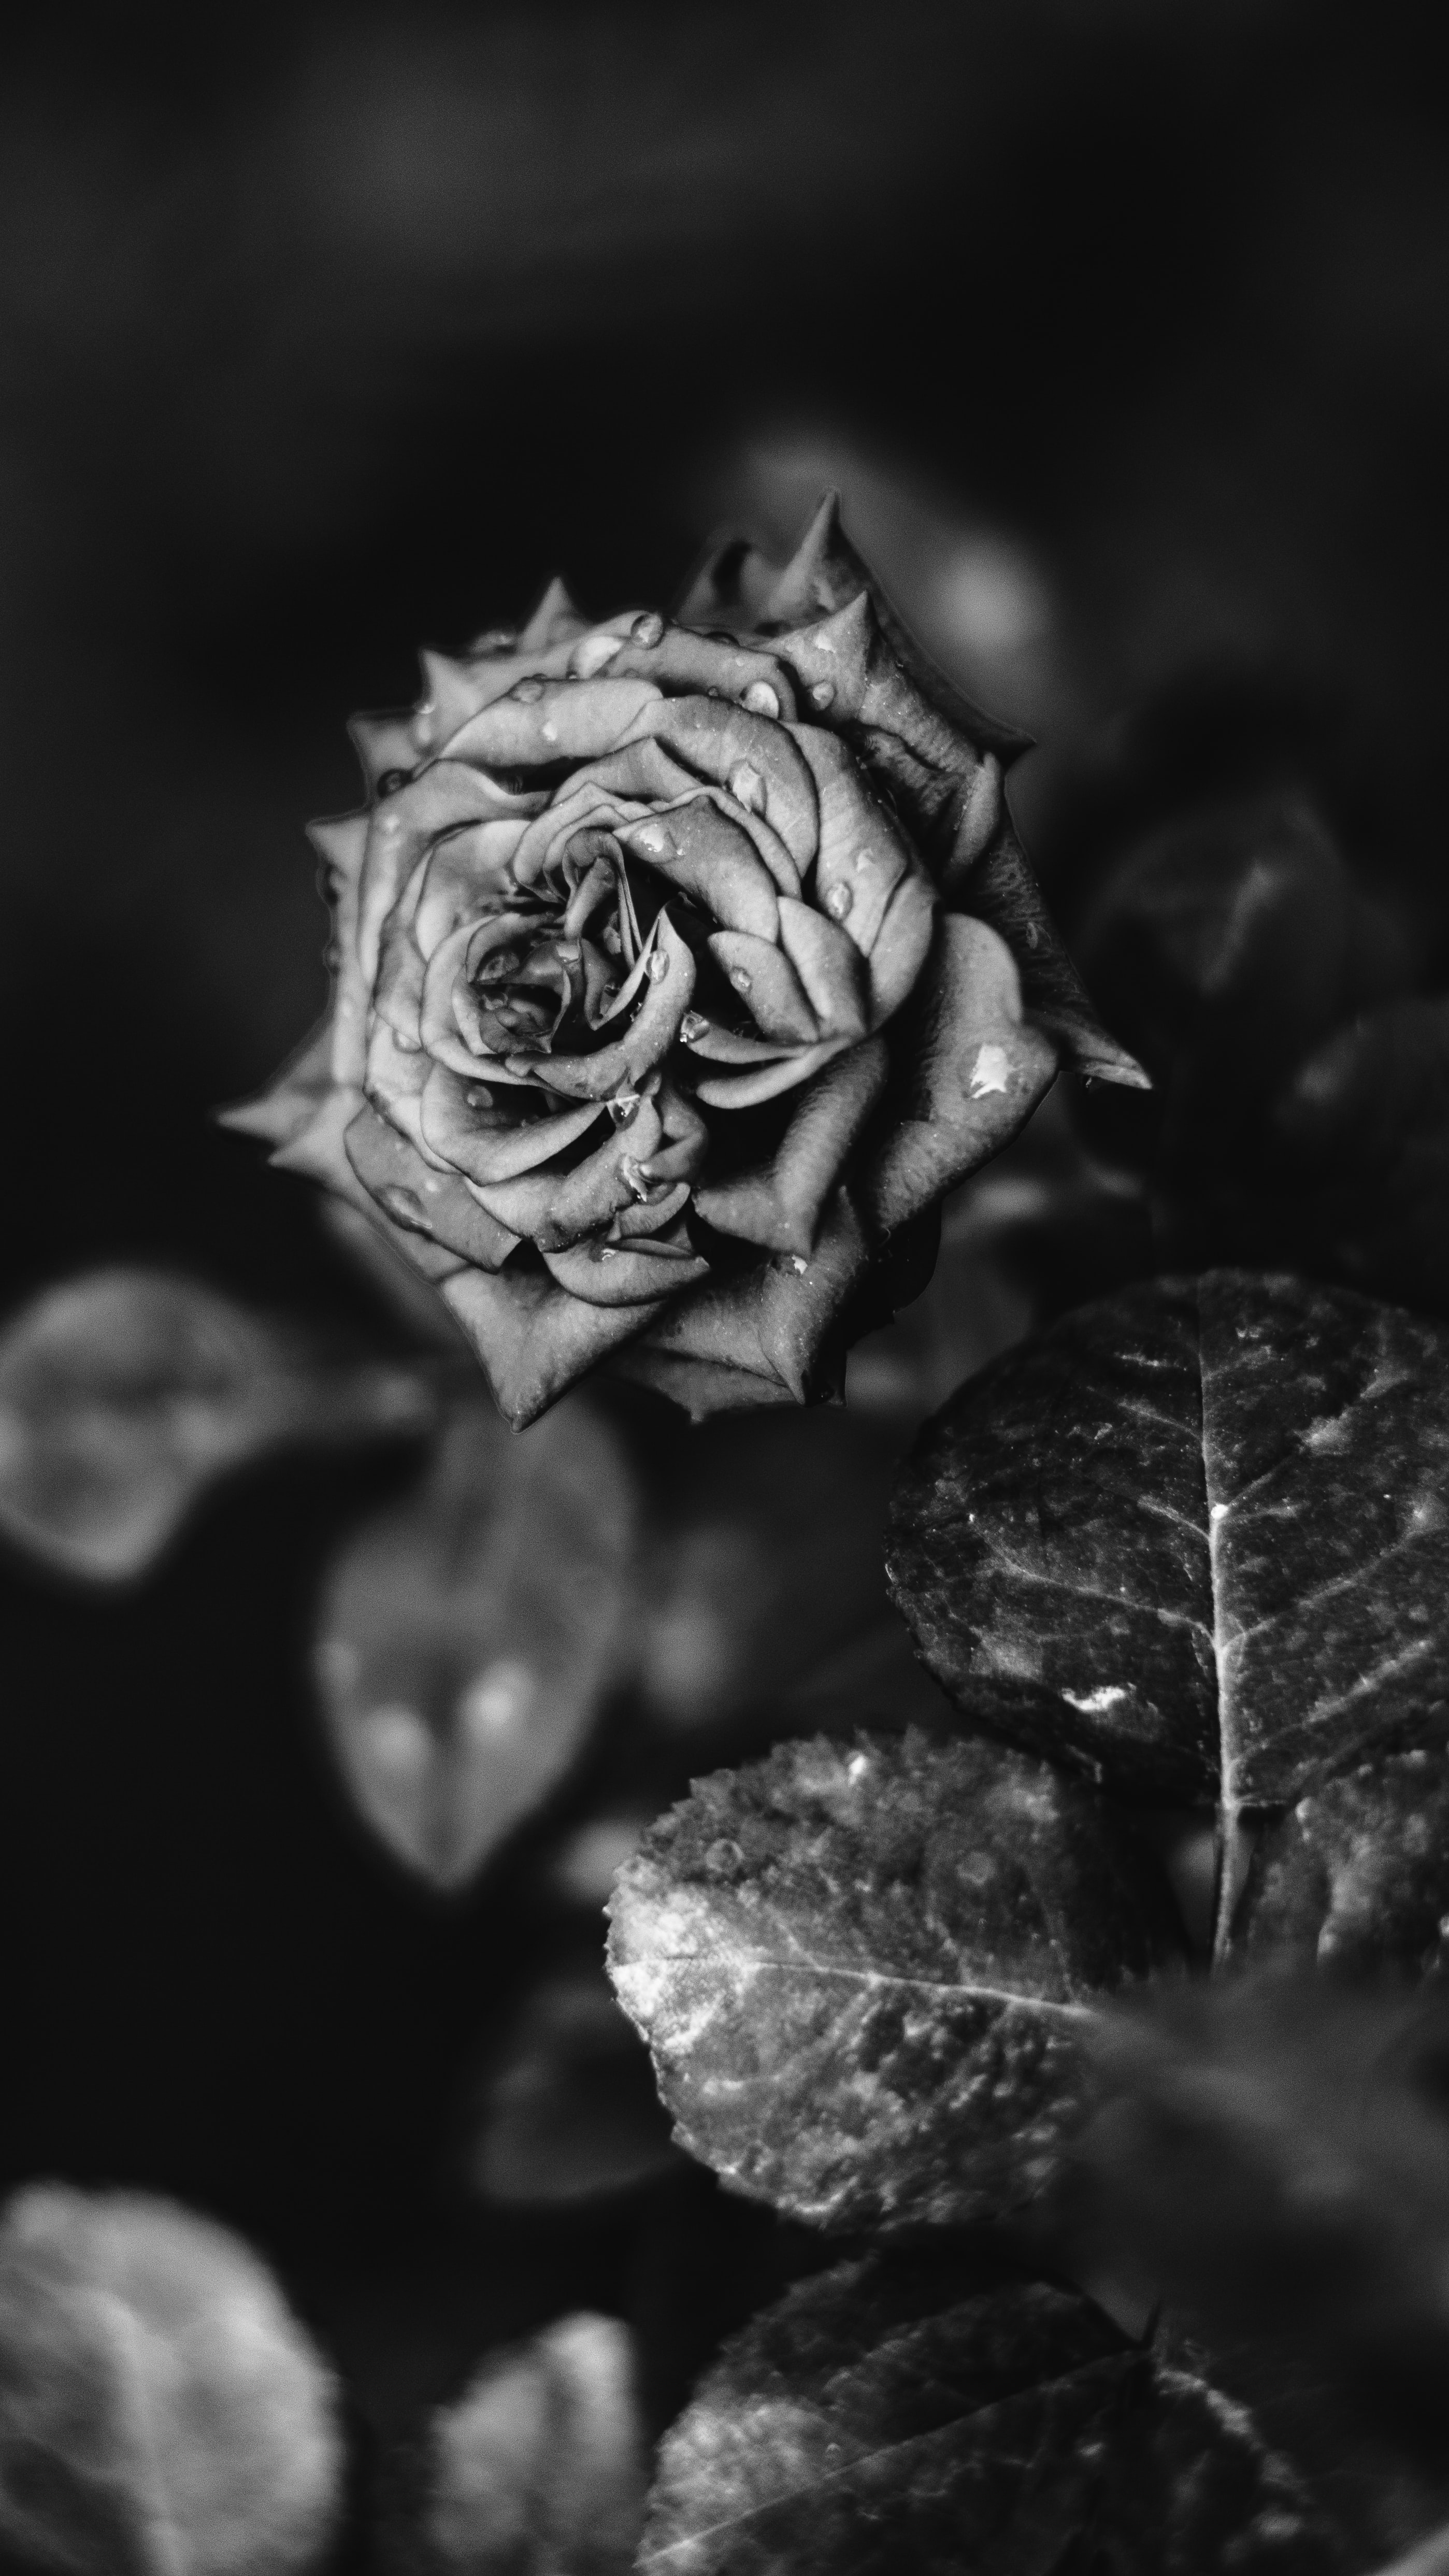 Aesthetic Black And White Flower Wallpaper Flower Black And White Transparent Images 1 514